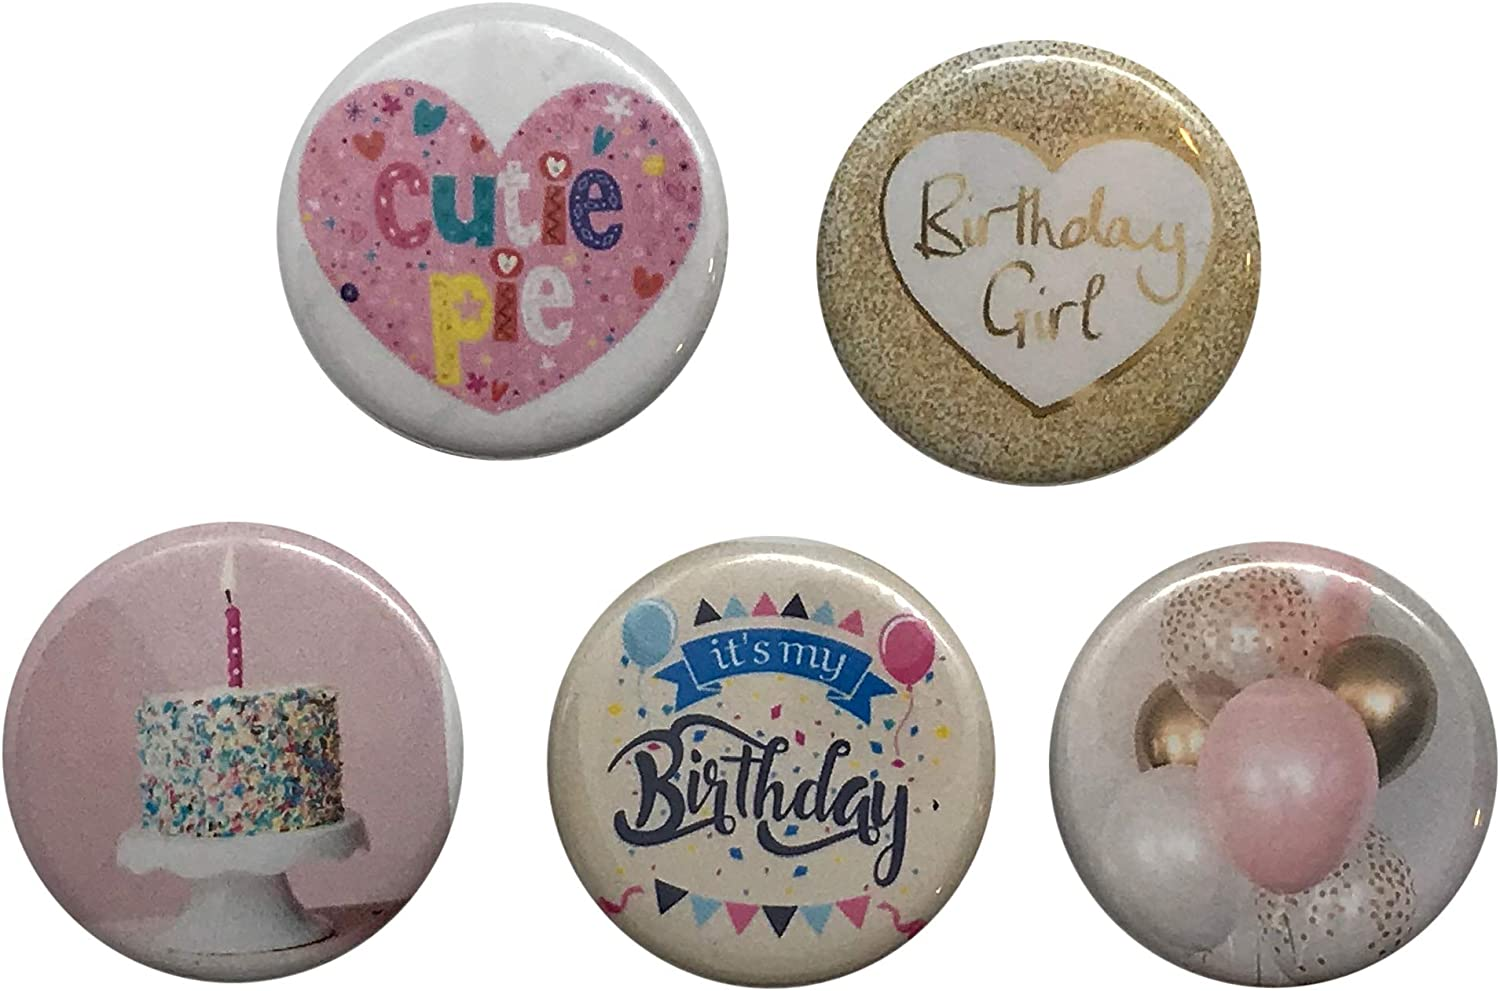 5 piece Happy Birthday Backpack pins buttons 1.25 Inch PinBack Buttons Girls birthday buttons for backpack or clothes Birthday Present for girls backpack pins: Clothing